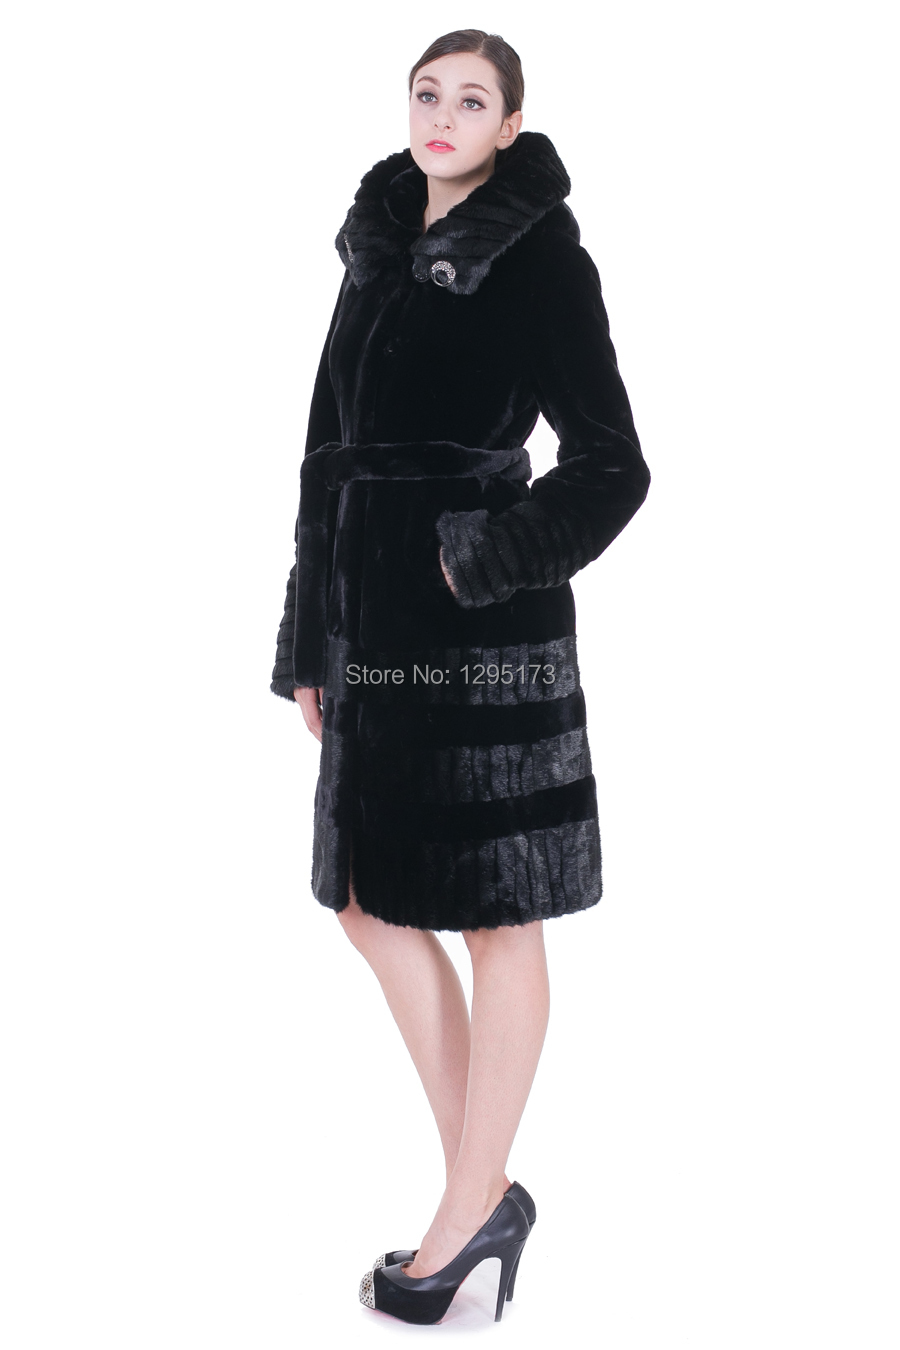 2014 new Black faux mink cashmere with light black mink fur women knee-length coat free shipping(China (Mainland))